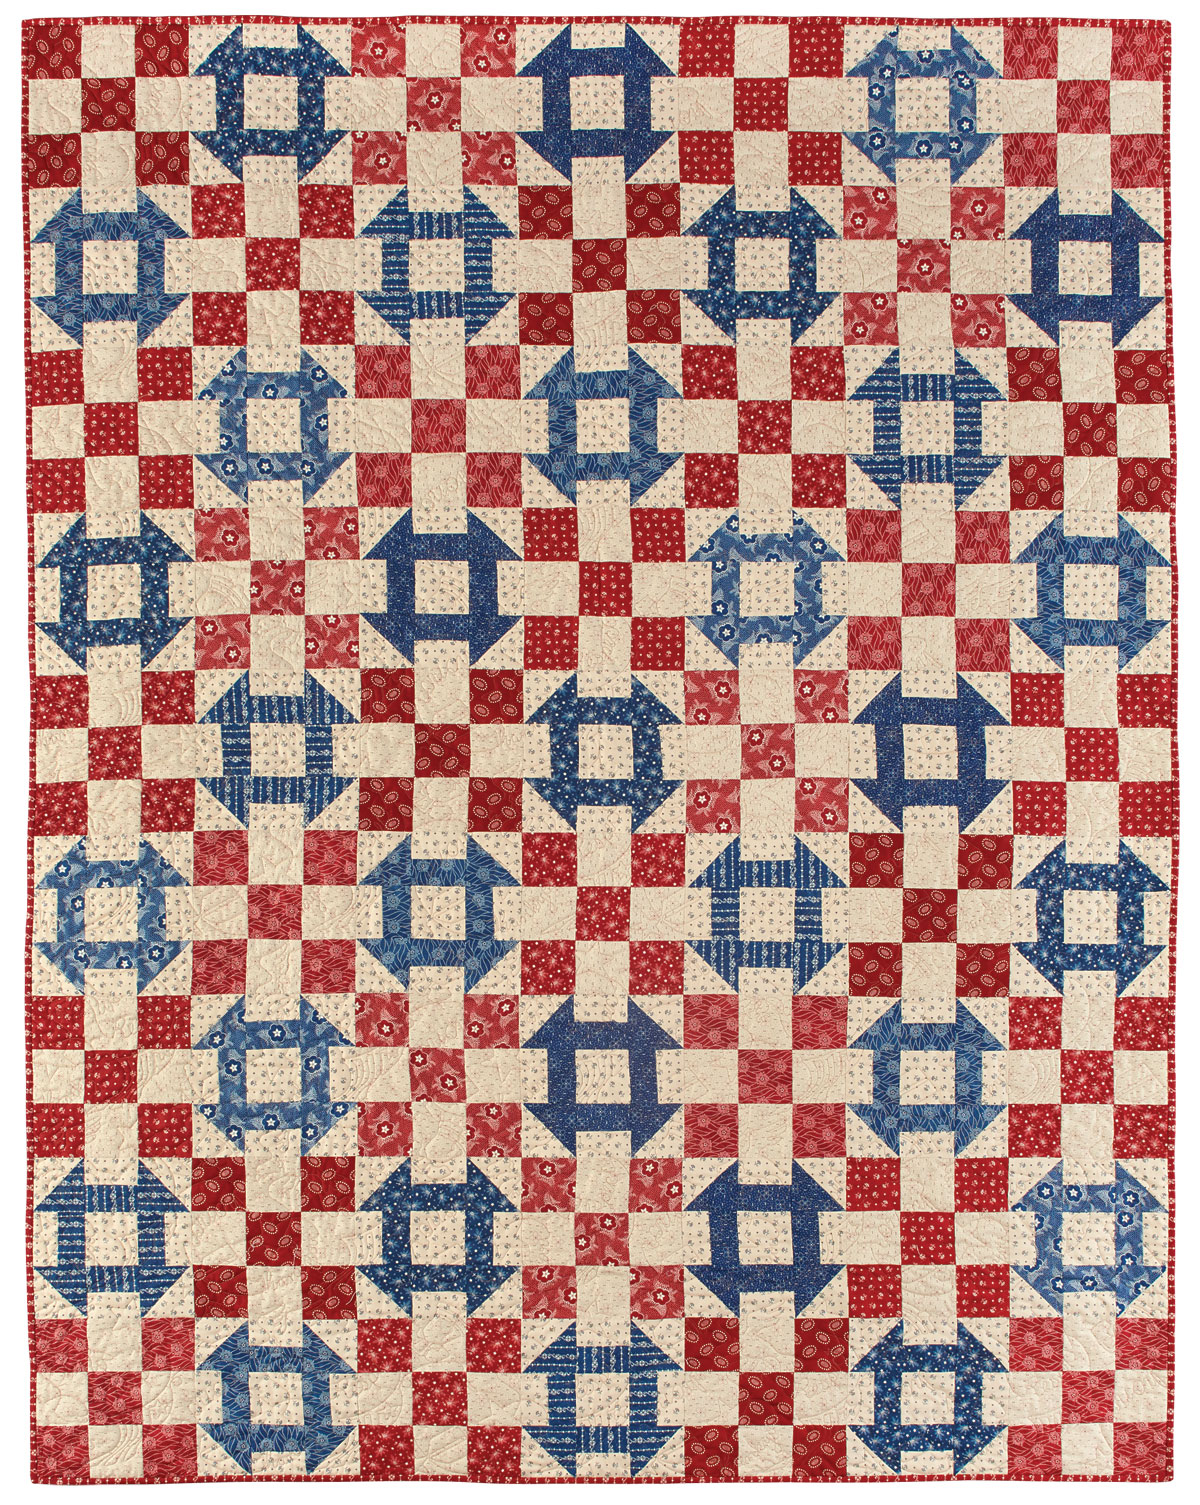 Quilting Patterns And Notions : House Divided Quilt - Fons & Porter - The Quilting Company